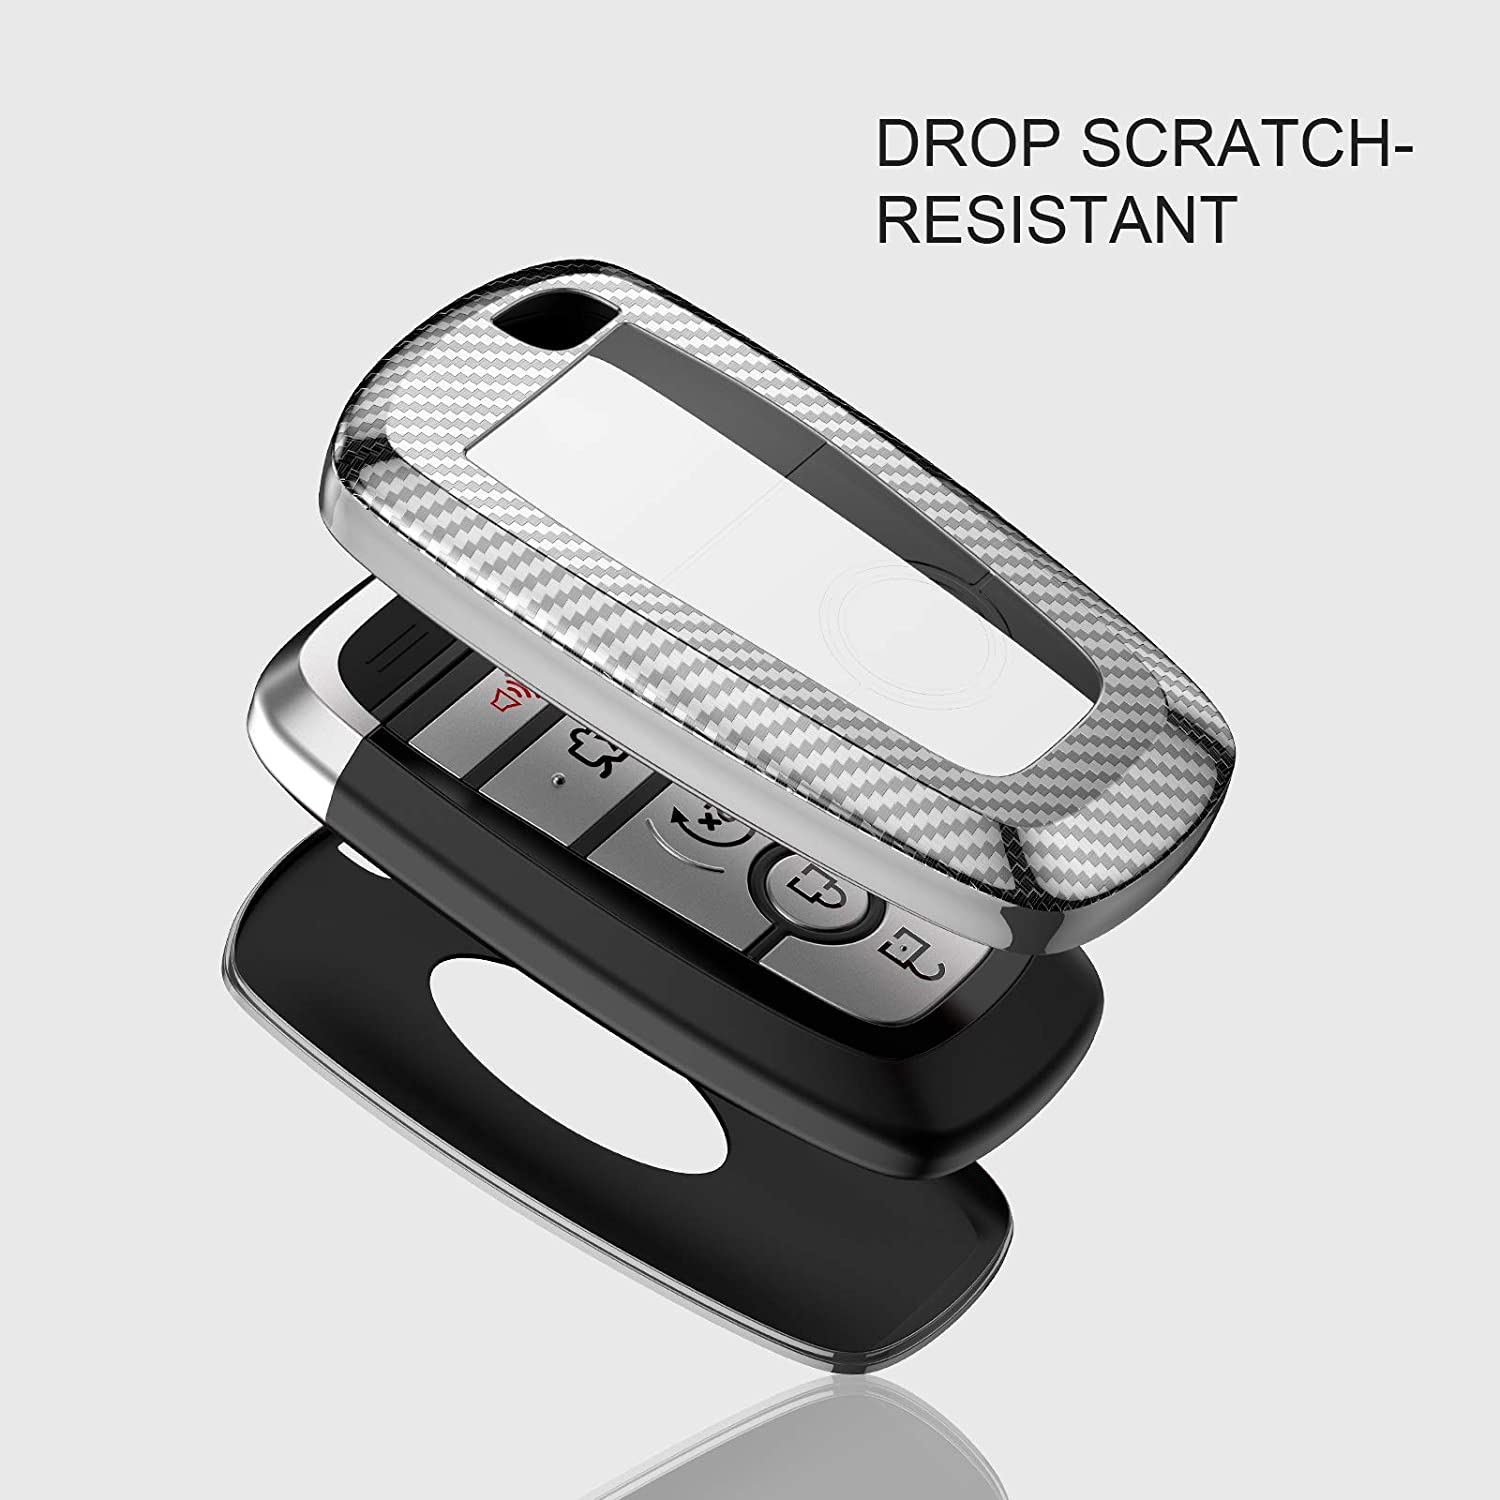 ELOHEI for Ford Key Fob Cover Case Soft TPU Key Fob Case Protector Holder for 2017 2018 2019 Ford Fusion F150 F250 F350 F450 F550 Edge Explorer Escape Mustang Remote Keyless Entry Silver